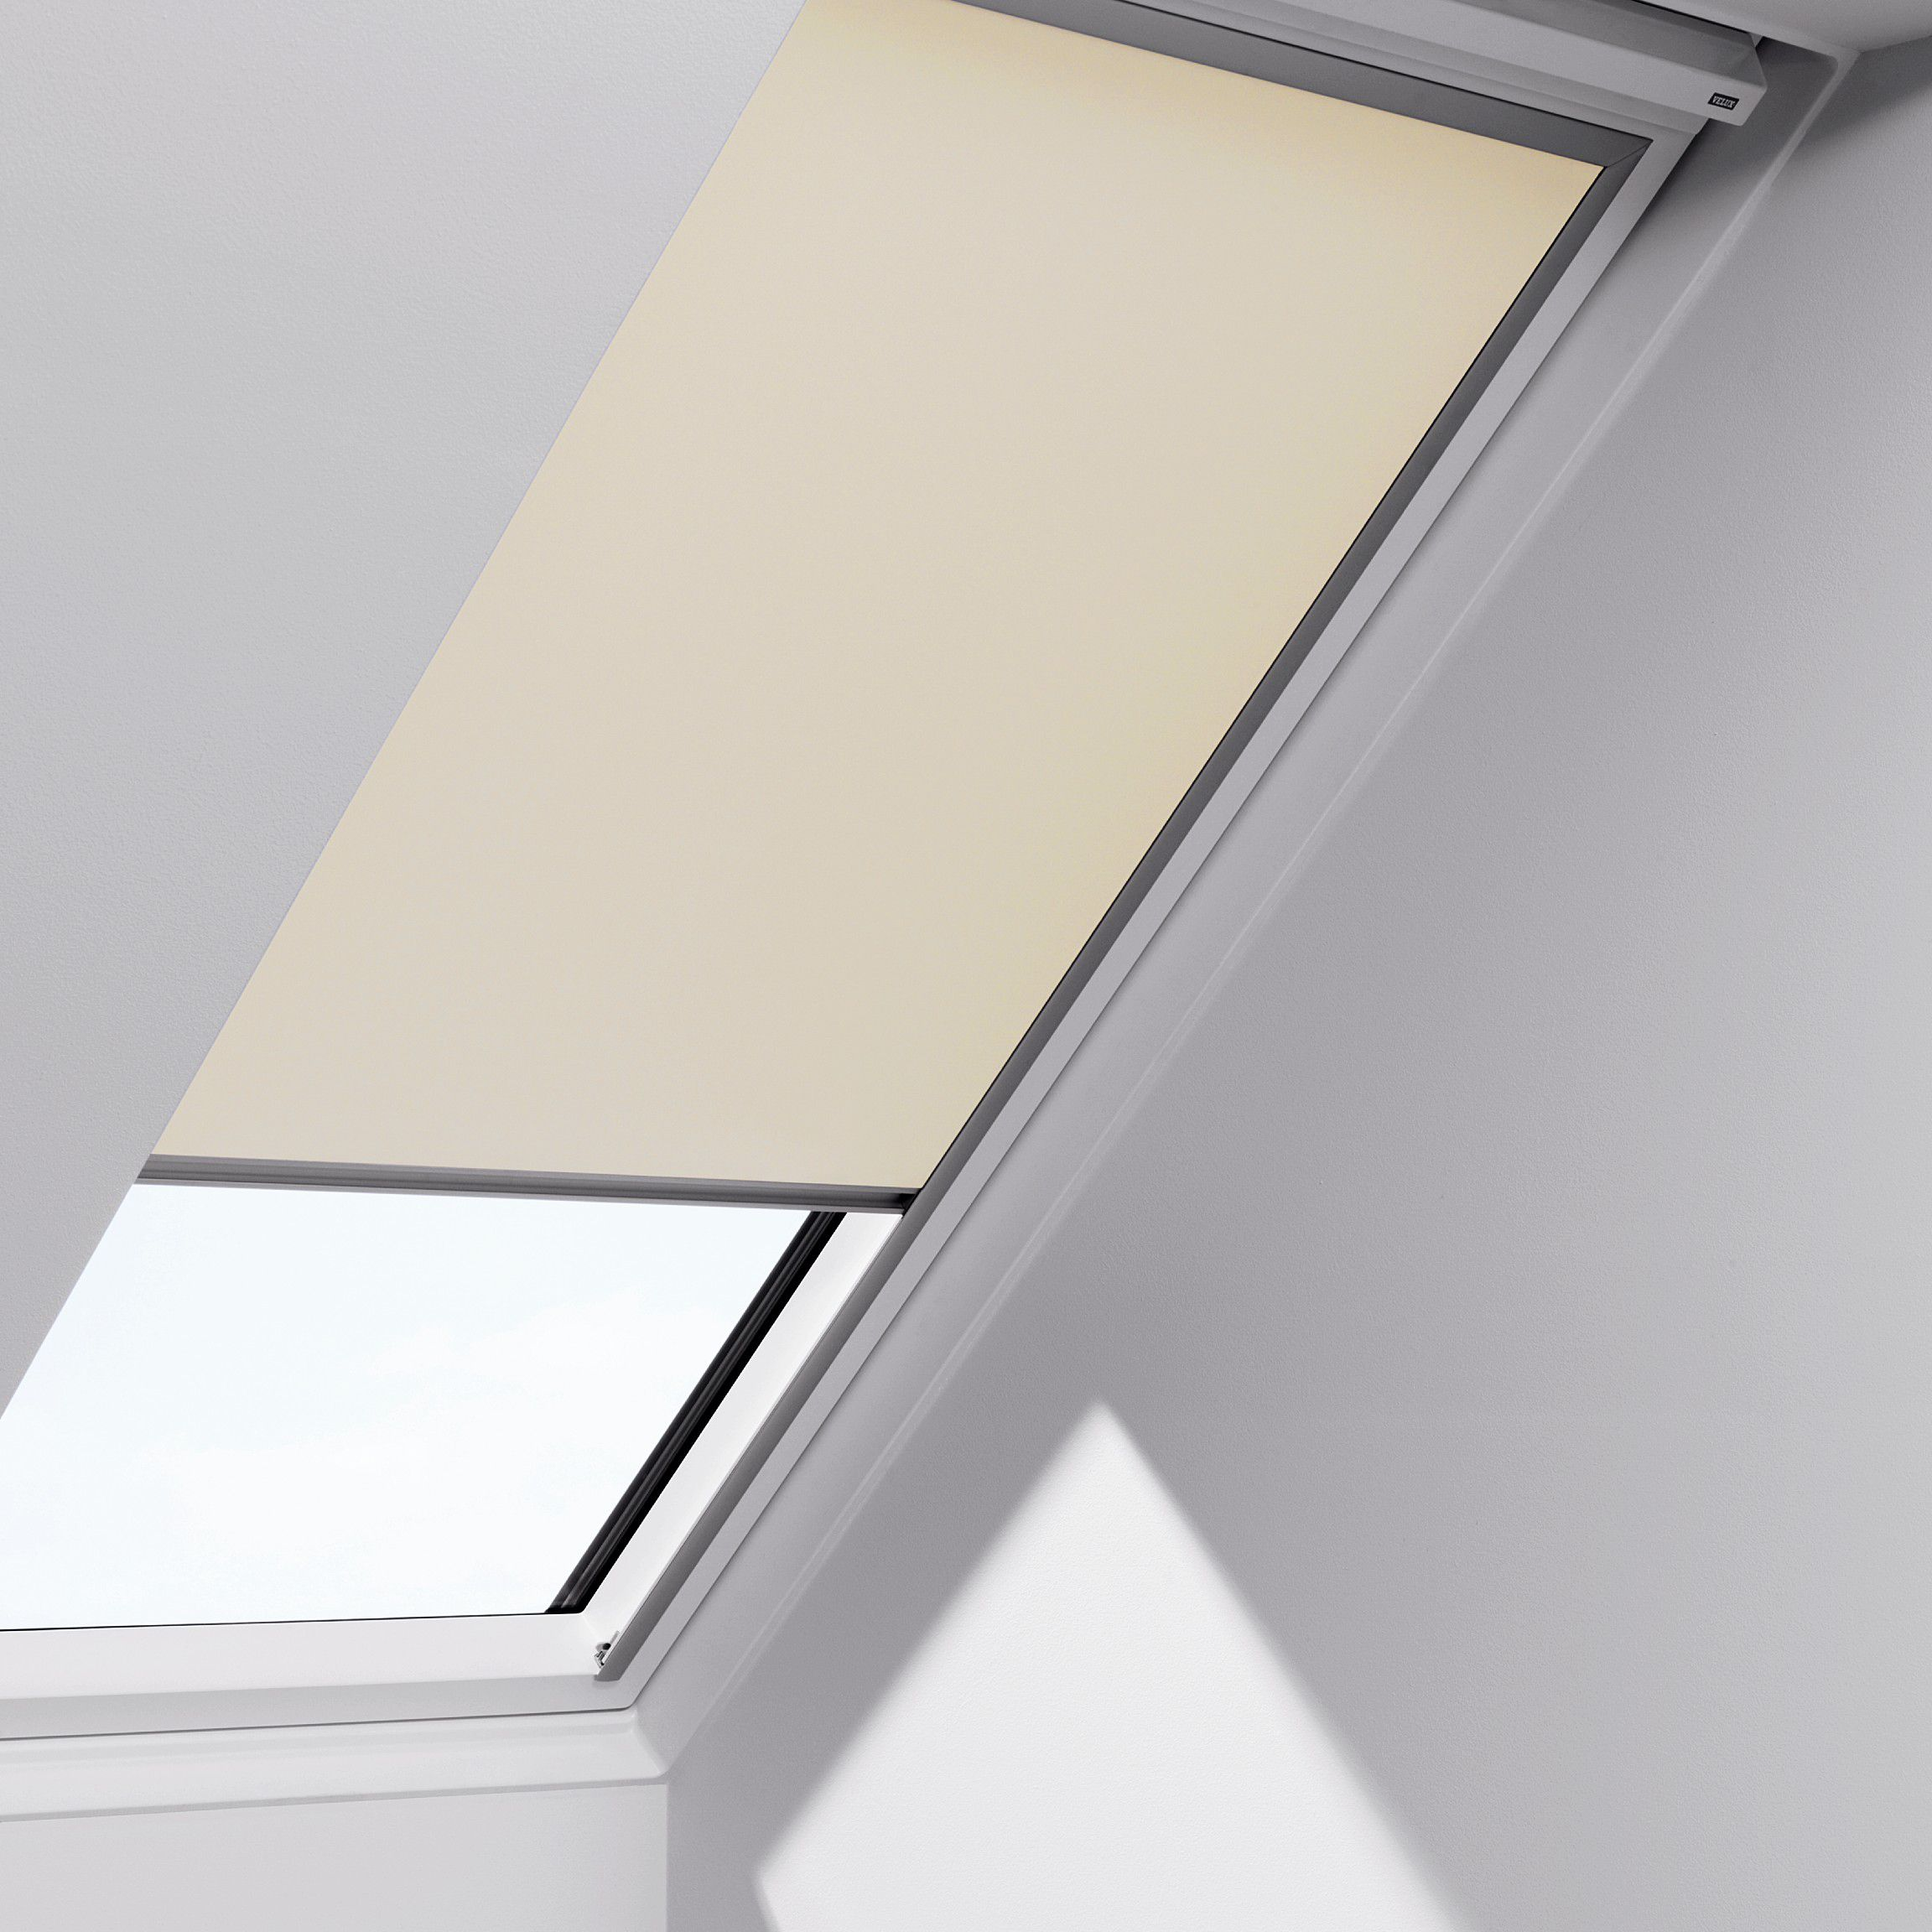 velux ggl 306 simple velux ggl mk white painted integra solar window x cm with velux ggl 306. Black Bedroom Furniture Sets. Home Design Ideas